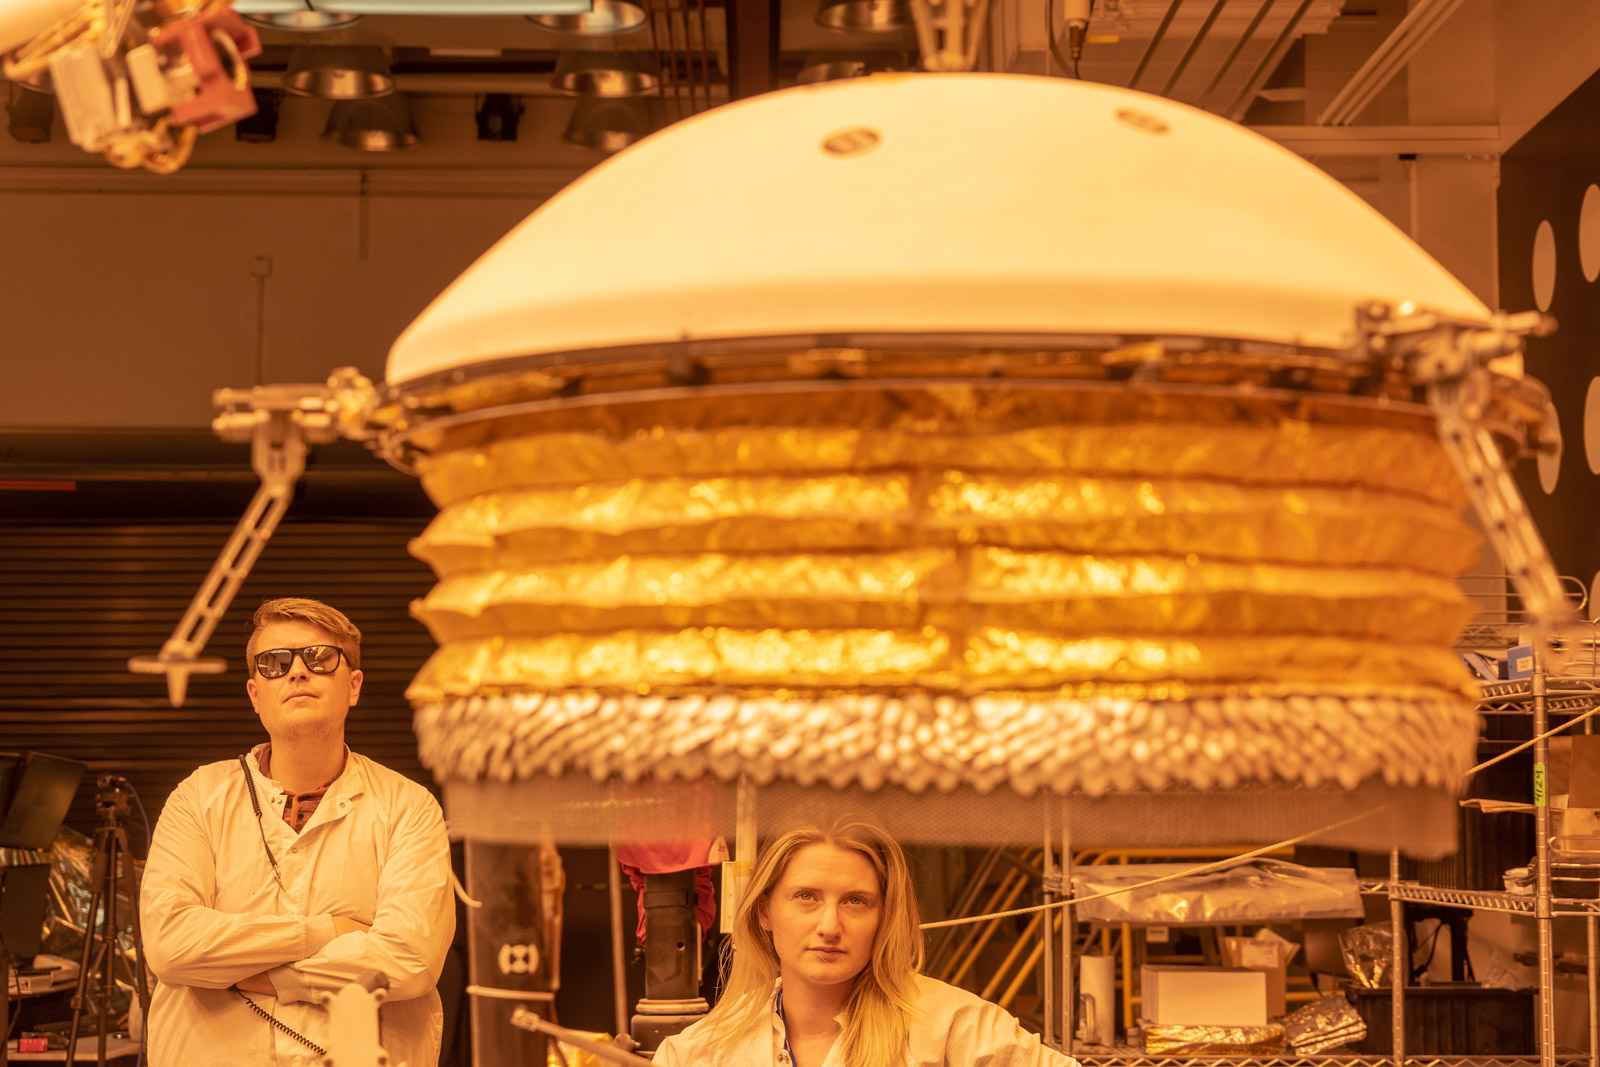 ForeSight, a fully functional, full-size model of NASA's InSight lander, practices deploying a model of the lander's Wind and Thermal Shield while engineers Phil Bailey (left) and Jaime Singer (center) look on. The Wind and Thermal Shield protects InSight's seismometer. This testing was done at NASA's Jet Propulsion Laboratory in Pasadena, California.